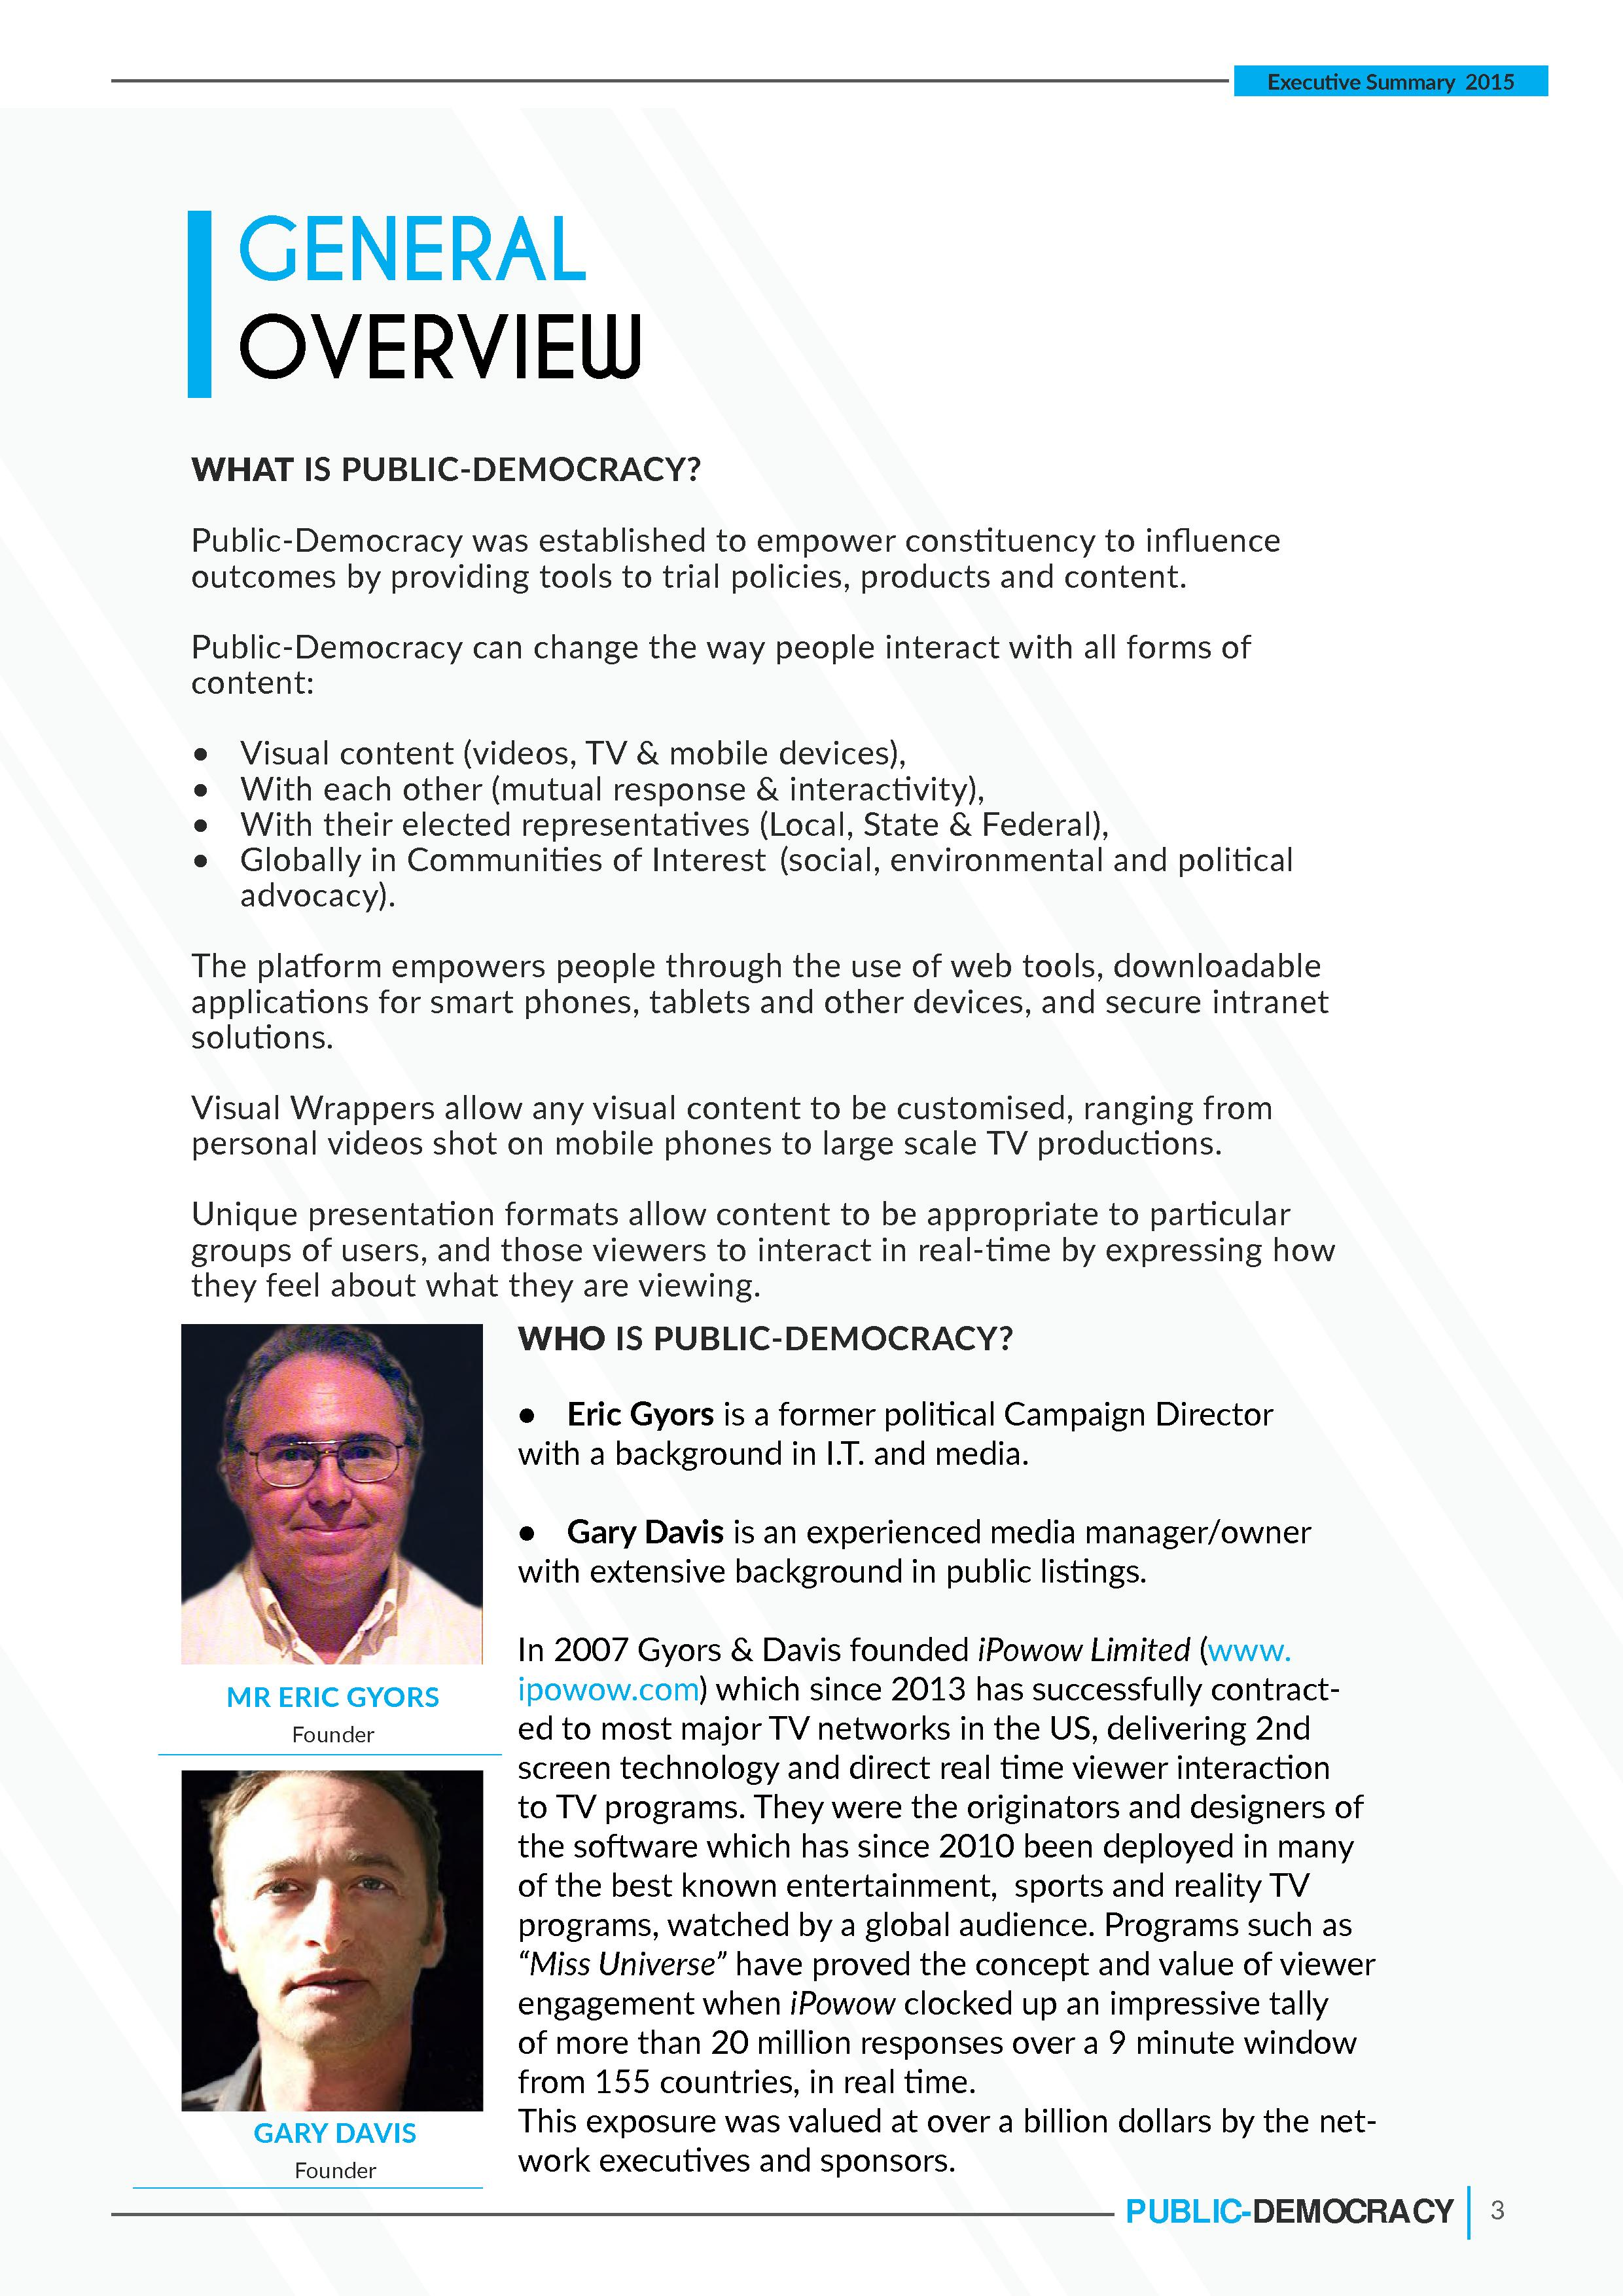 PD EXECUTIVE SUMMARY 2 003